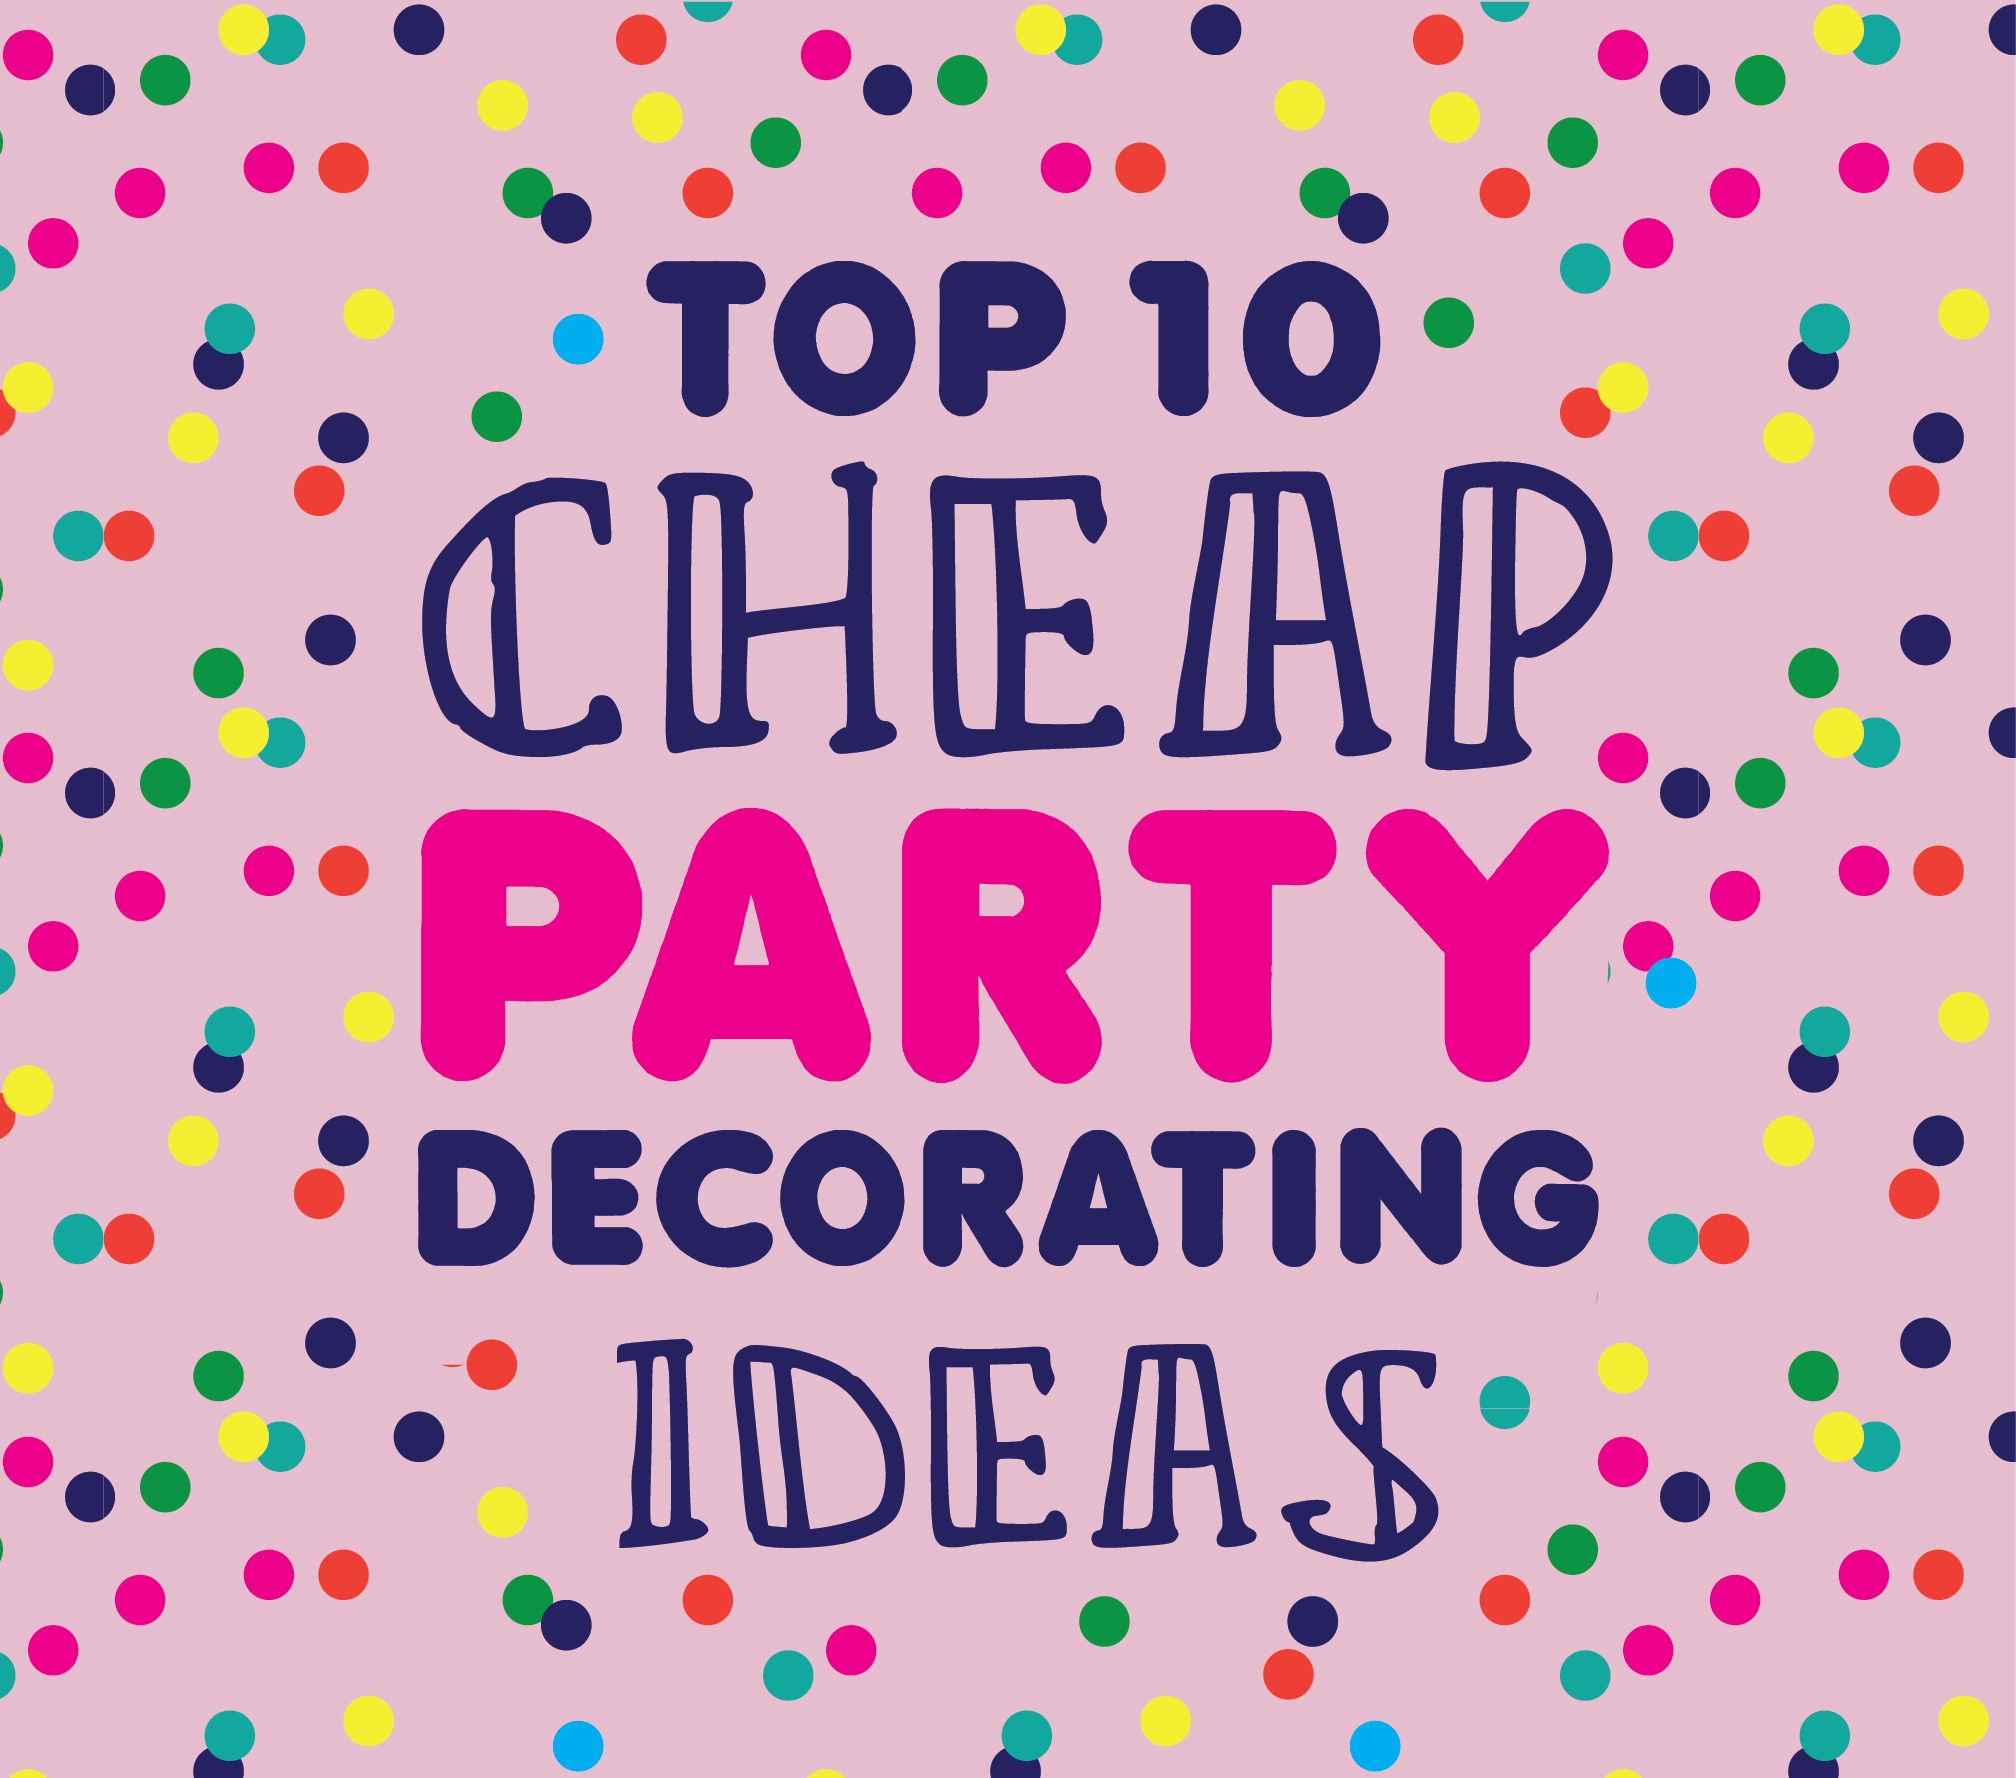 plastic cloths birthday decorations party table cheap walmart decor graduation from invitations